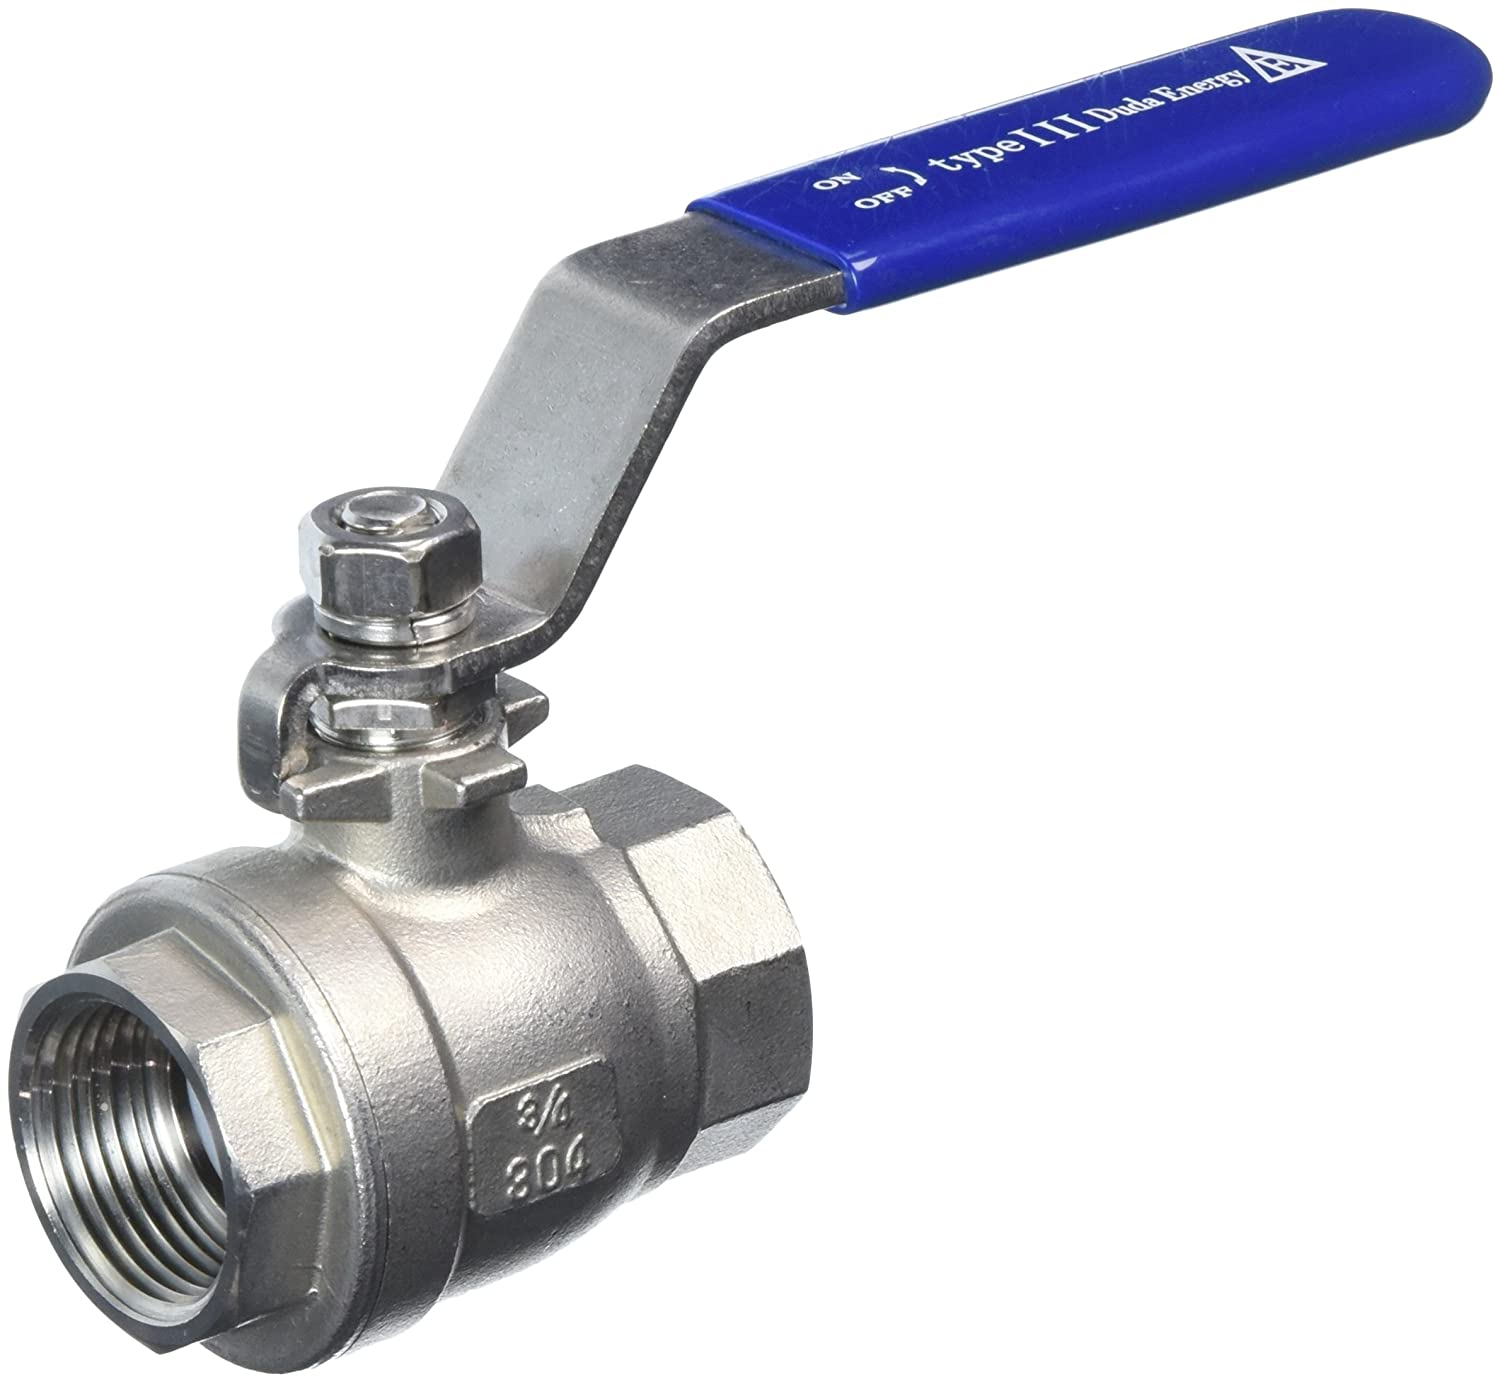 "Duda Energy 2PCBV-WOG200-F075 Full Port Ball Valve, 2 Piece, 3/4"" NPT, 304 Stainless Steel with Blue Vinyl Handle.75"""